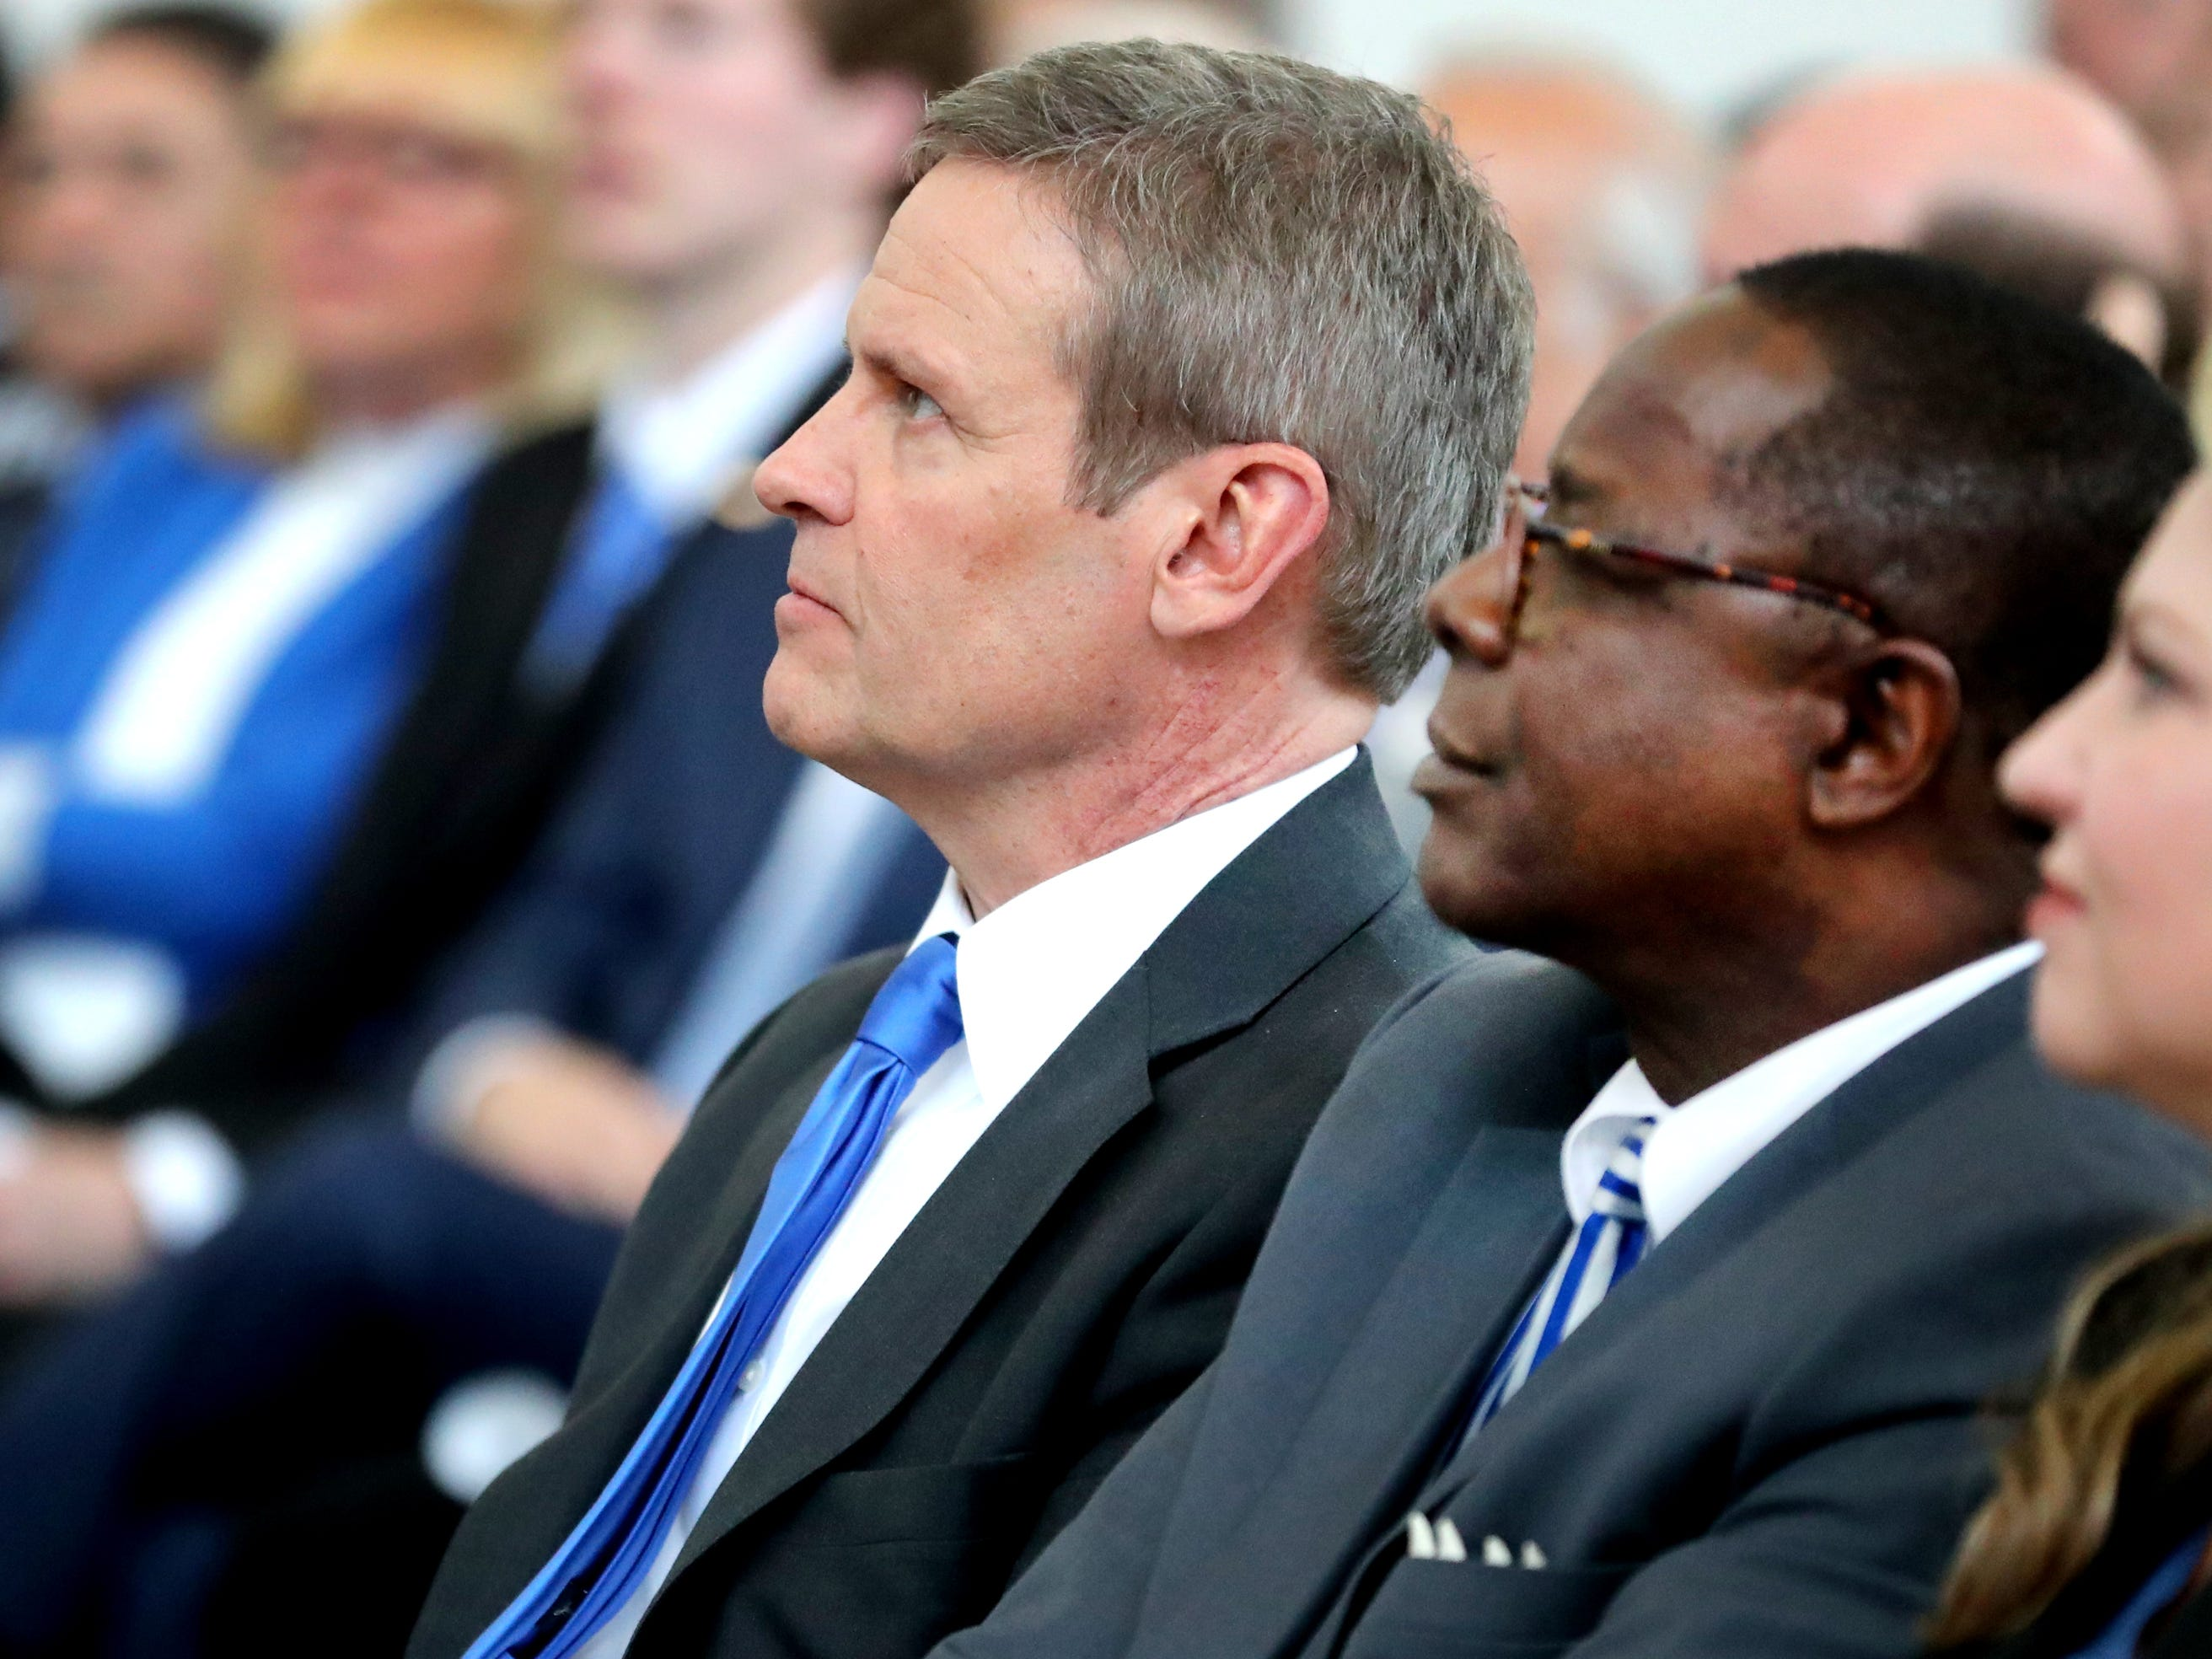 Tennessee Governor Bill Lee, left, and MTSU President Sidney McPhee sit next to each other during an MTSU program recognizing the Siemens' grant to MTSU's Mechatronics Engineering program, on Wednesday April 3, 2019.